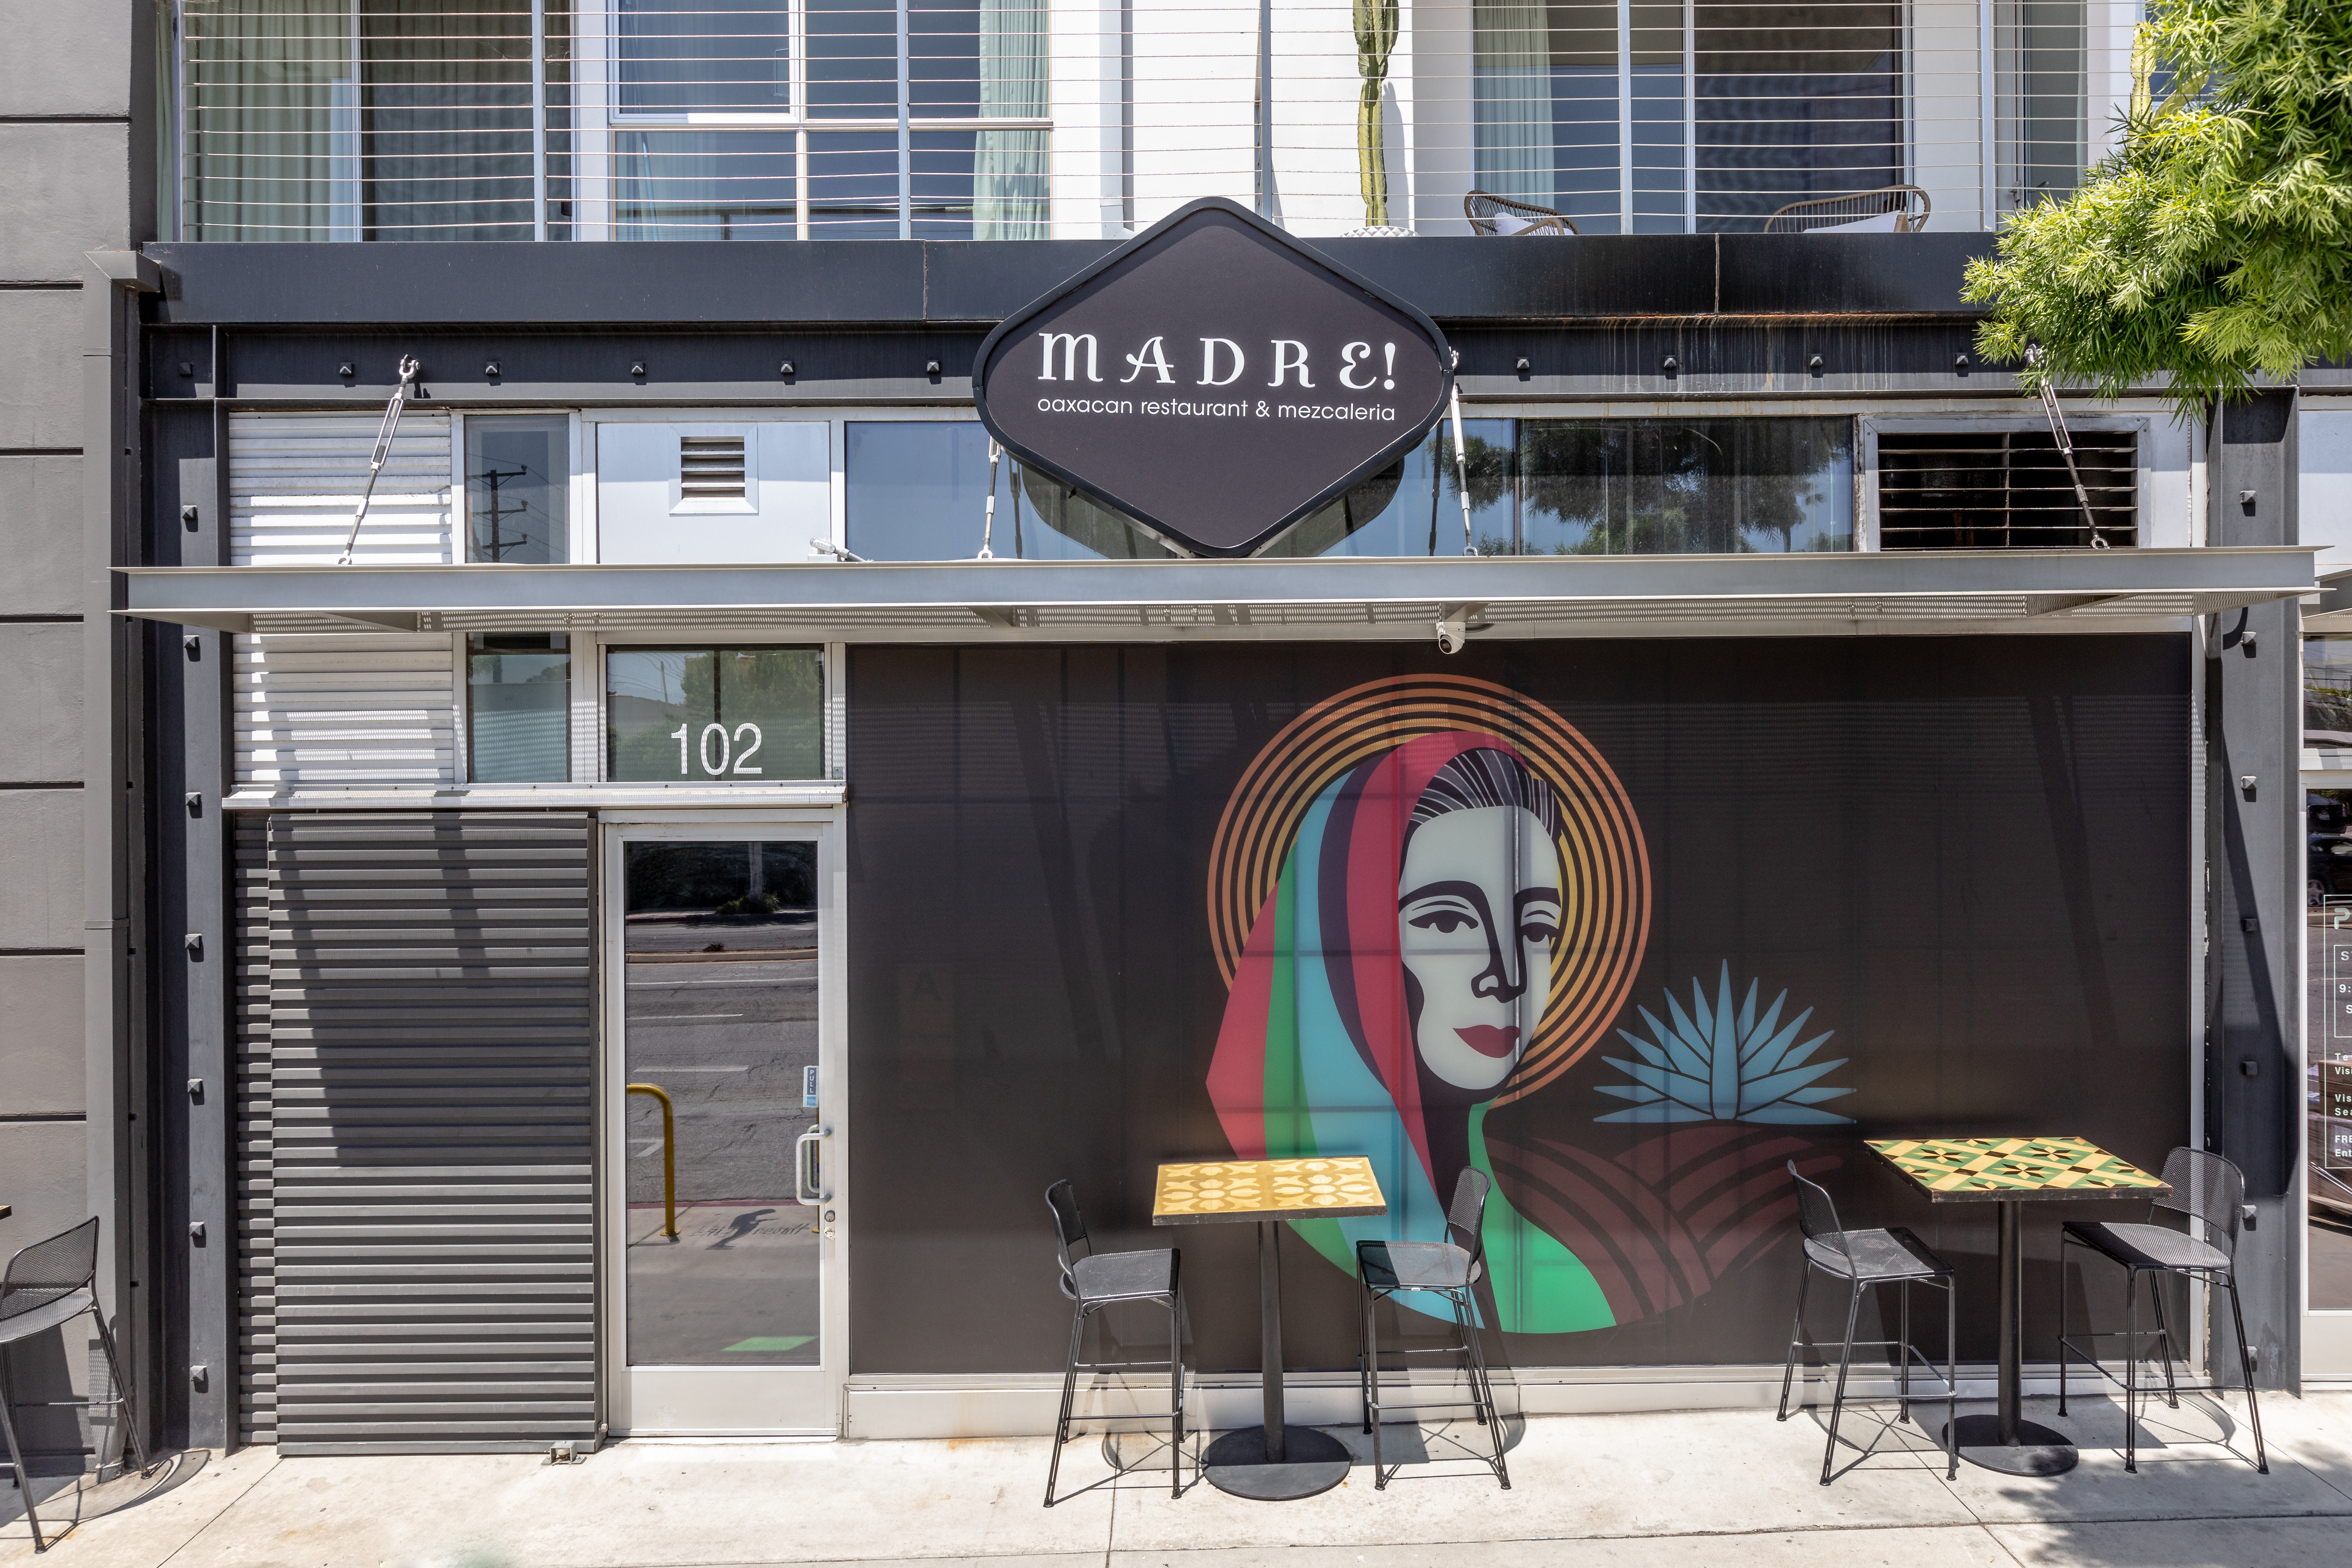 The exterior of Madre restaurant in West Hollywood